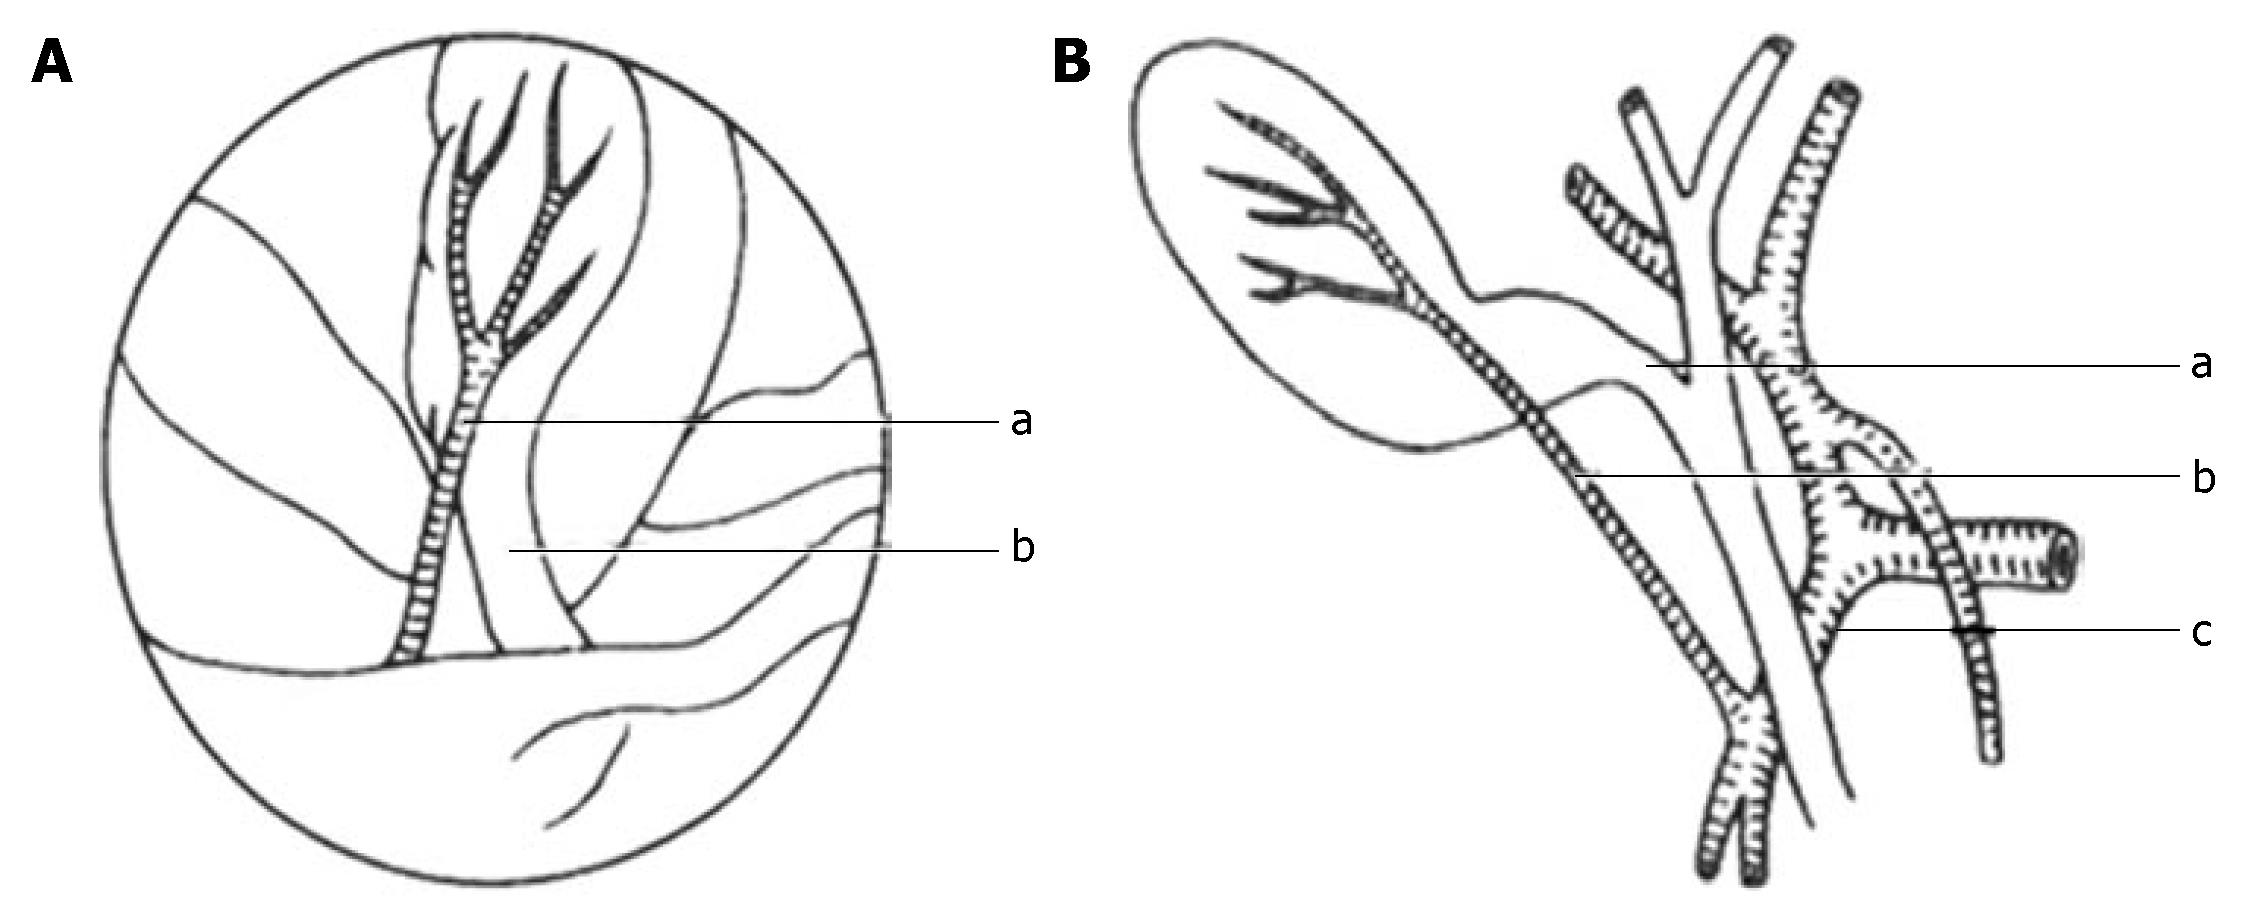 New classification of the anatomic variations of cystic artery ...